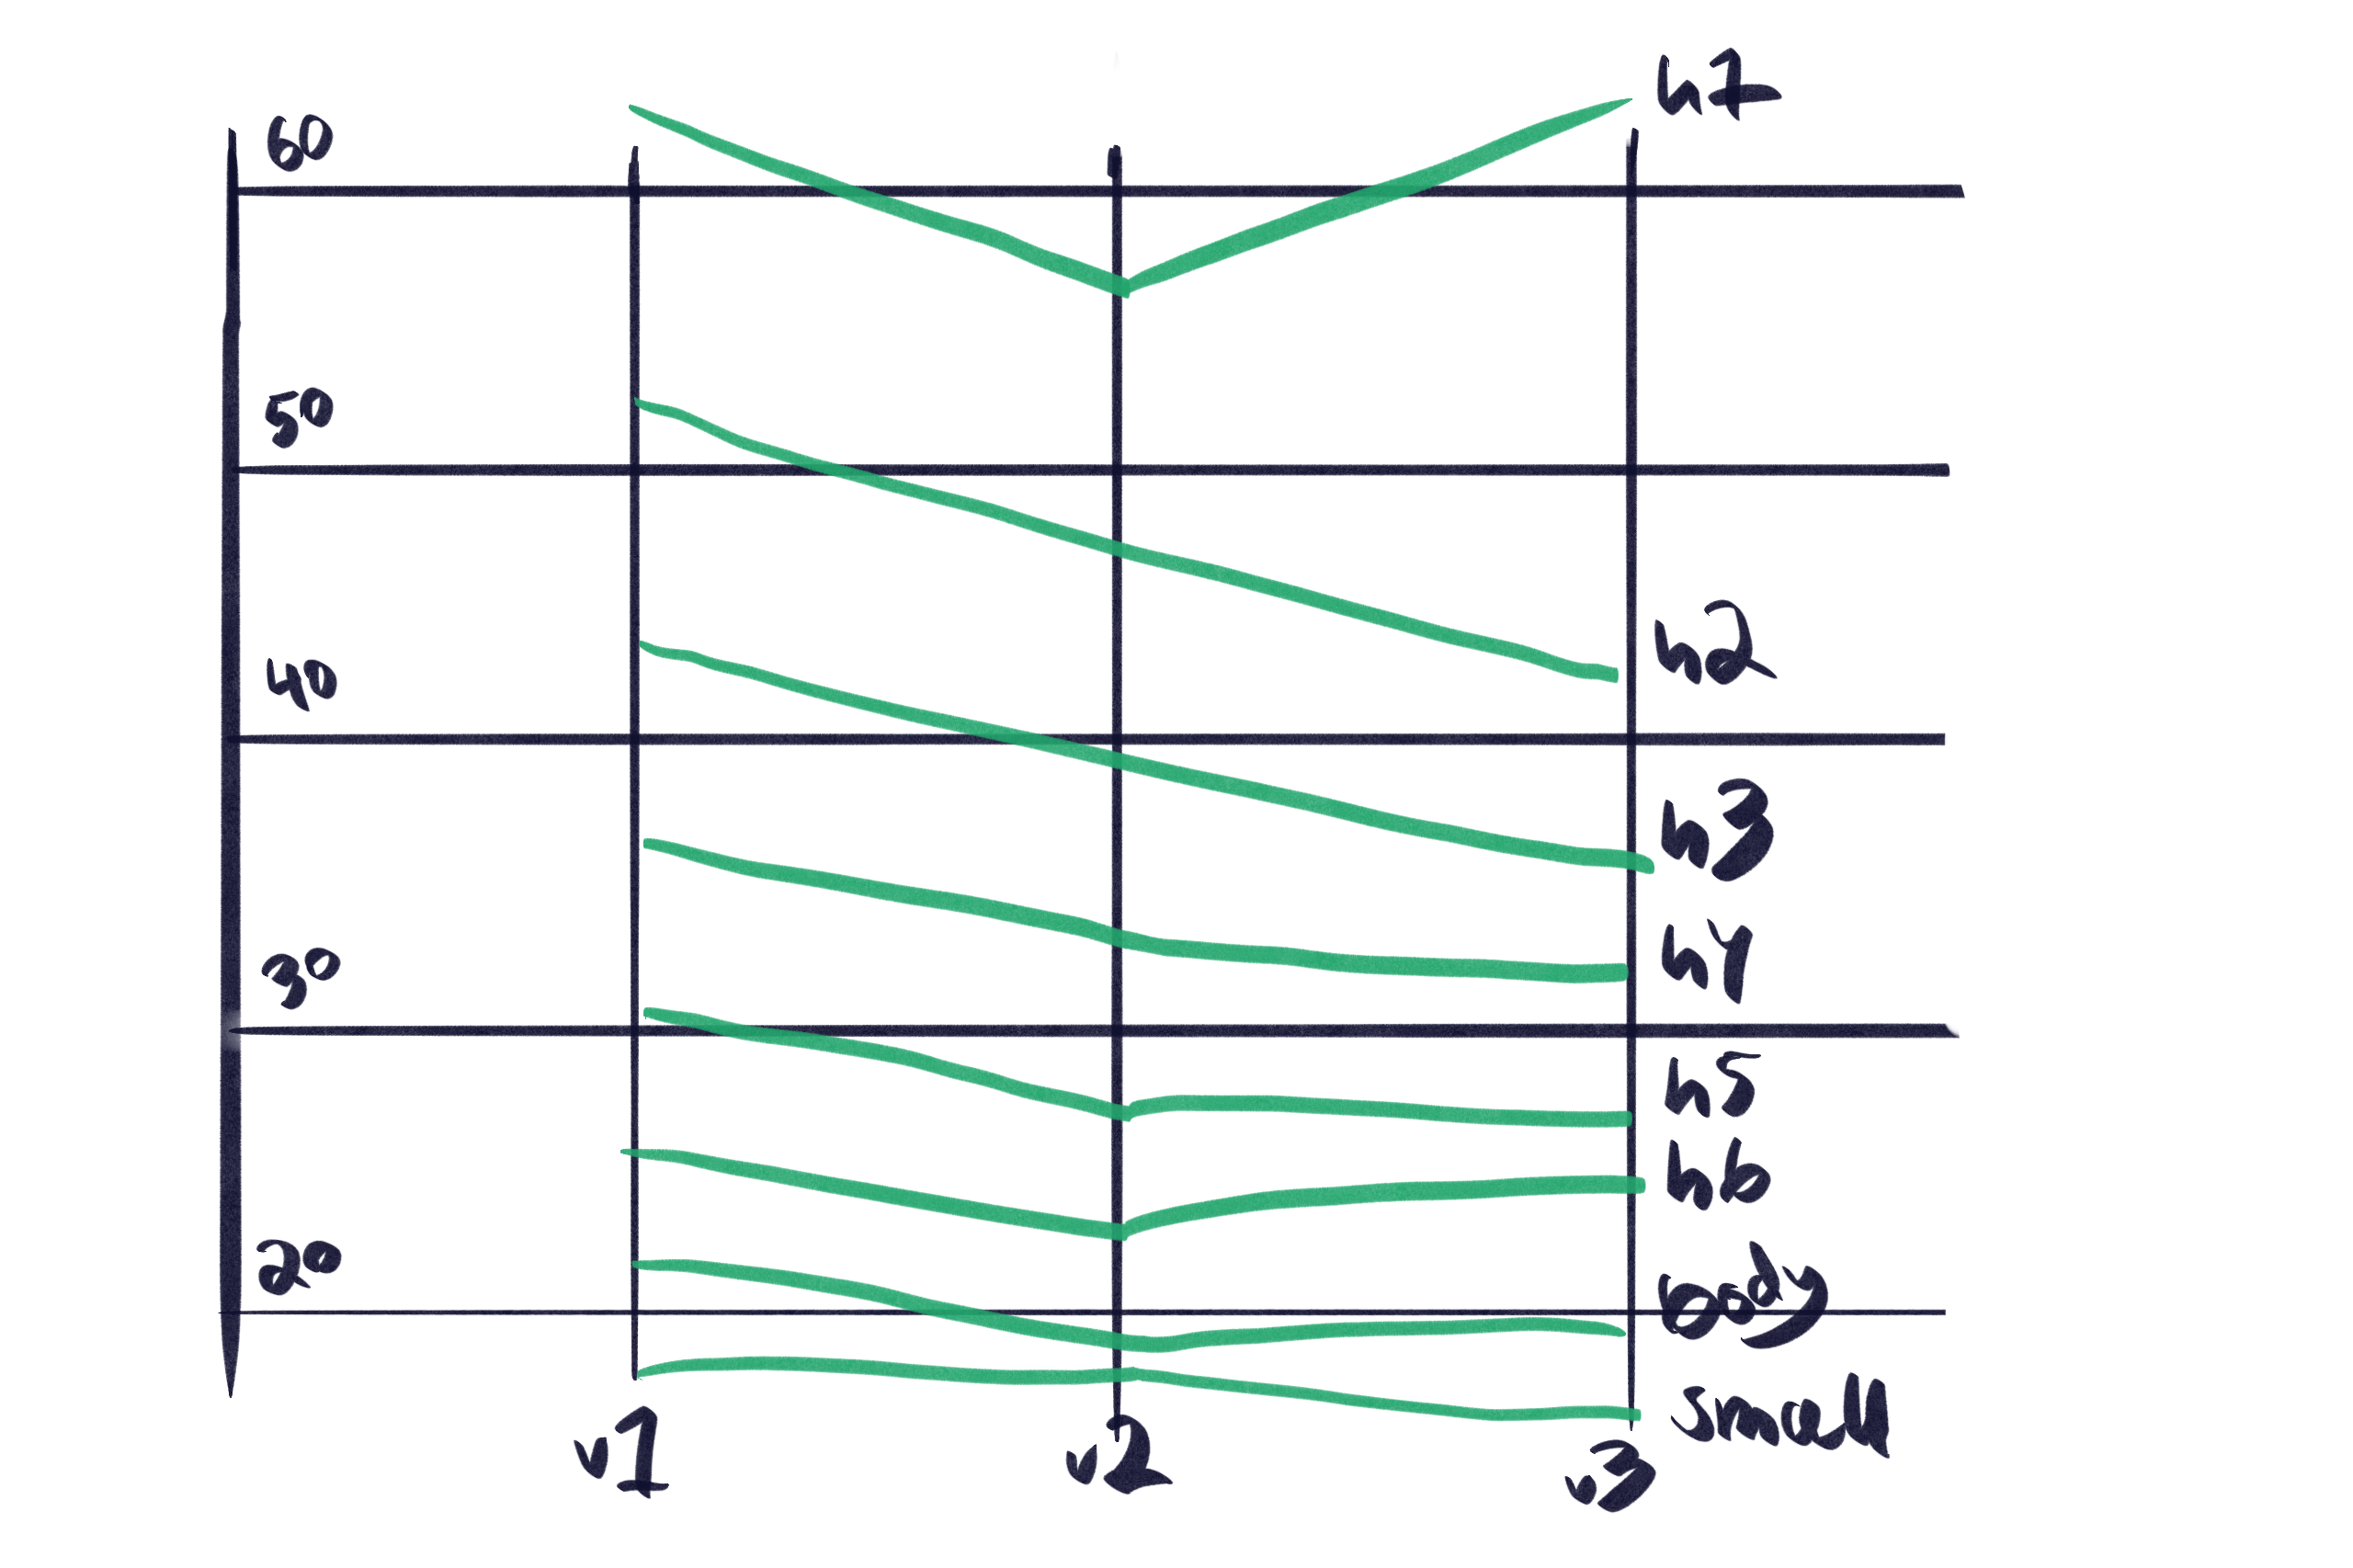 Chart showing the changing size hierarchy, from the first version to the final result where the biggest heading increases unlike the others.